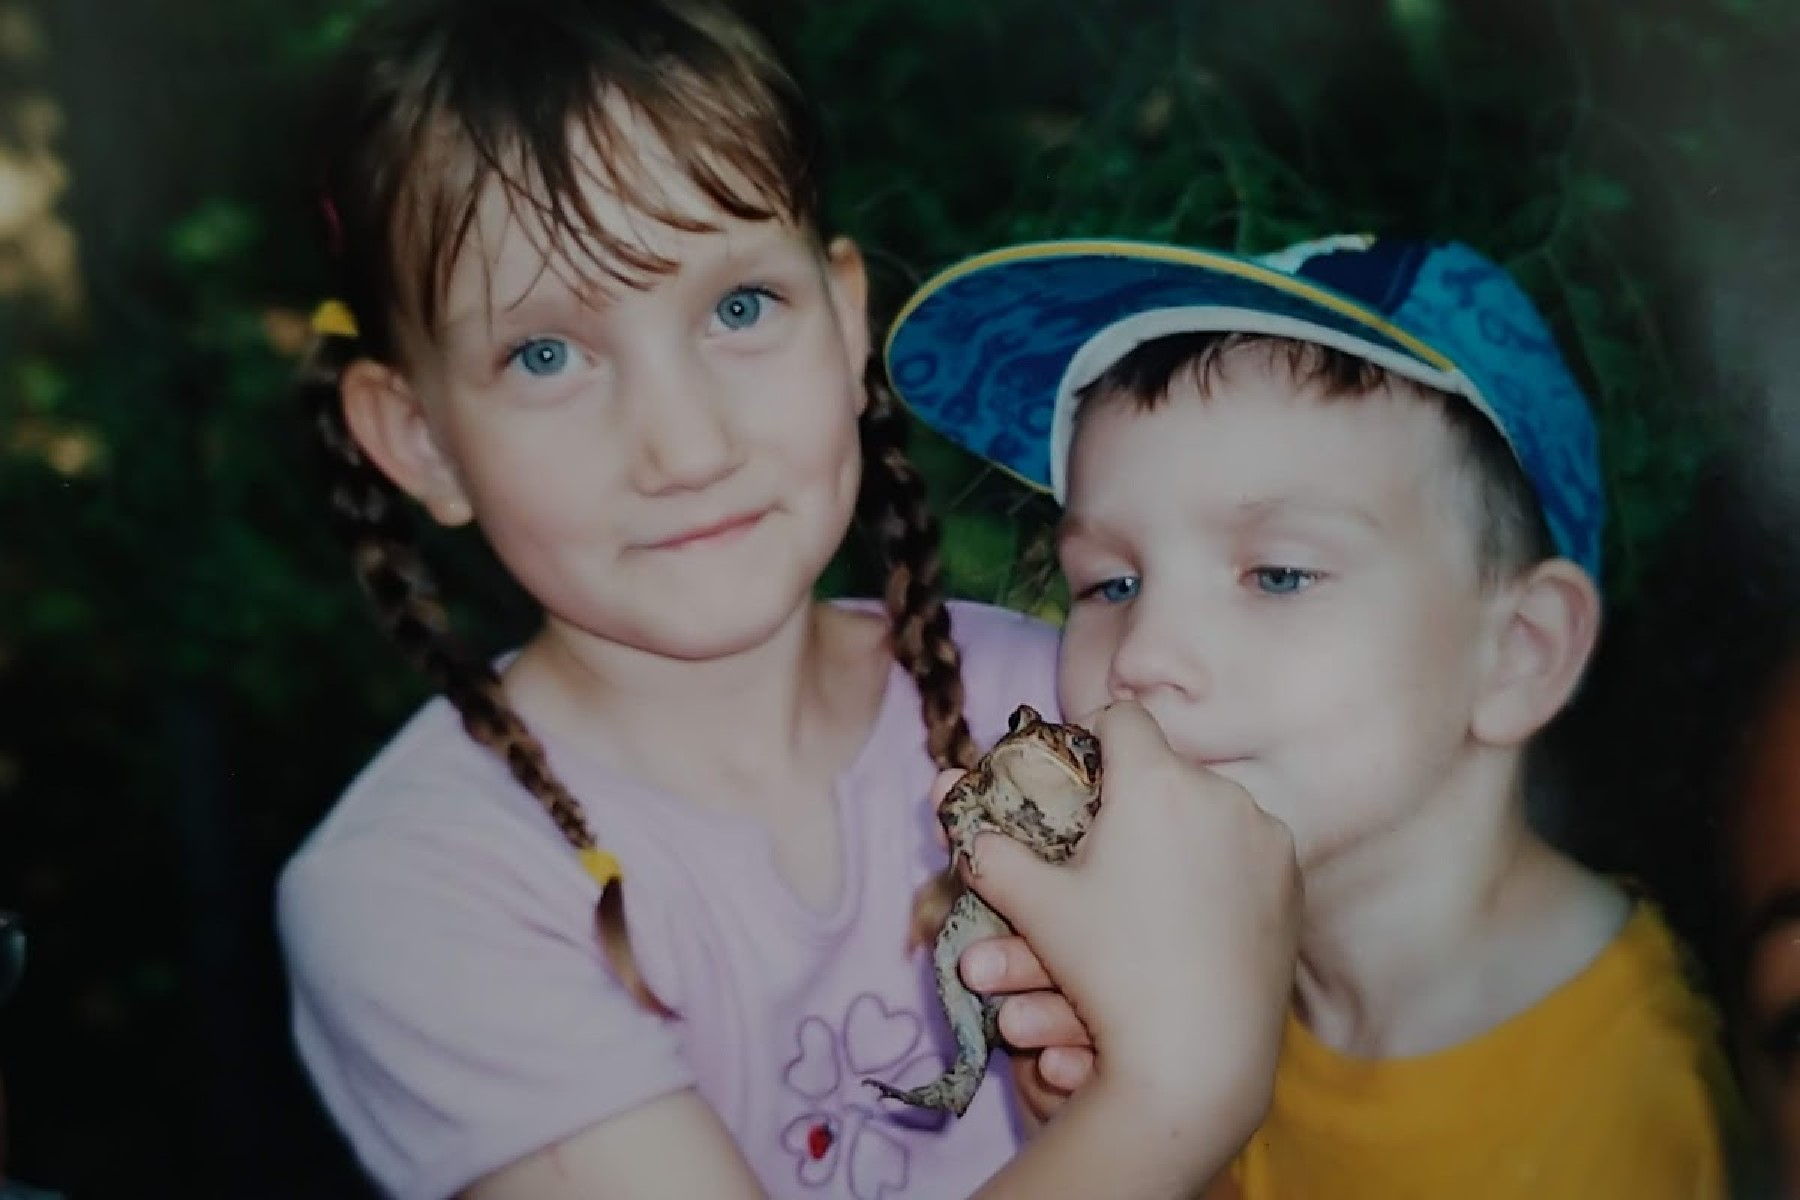 Kait, Colin, and frog